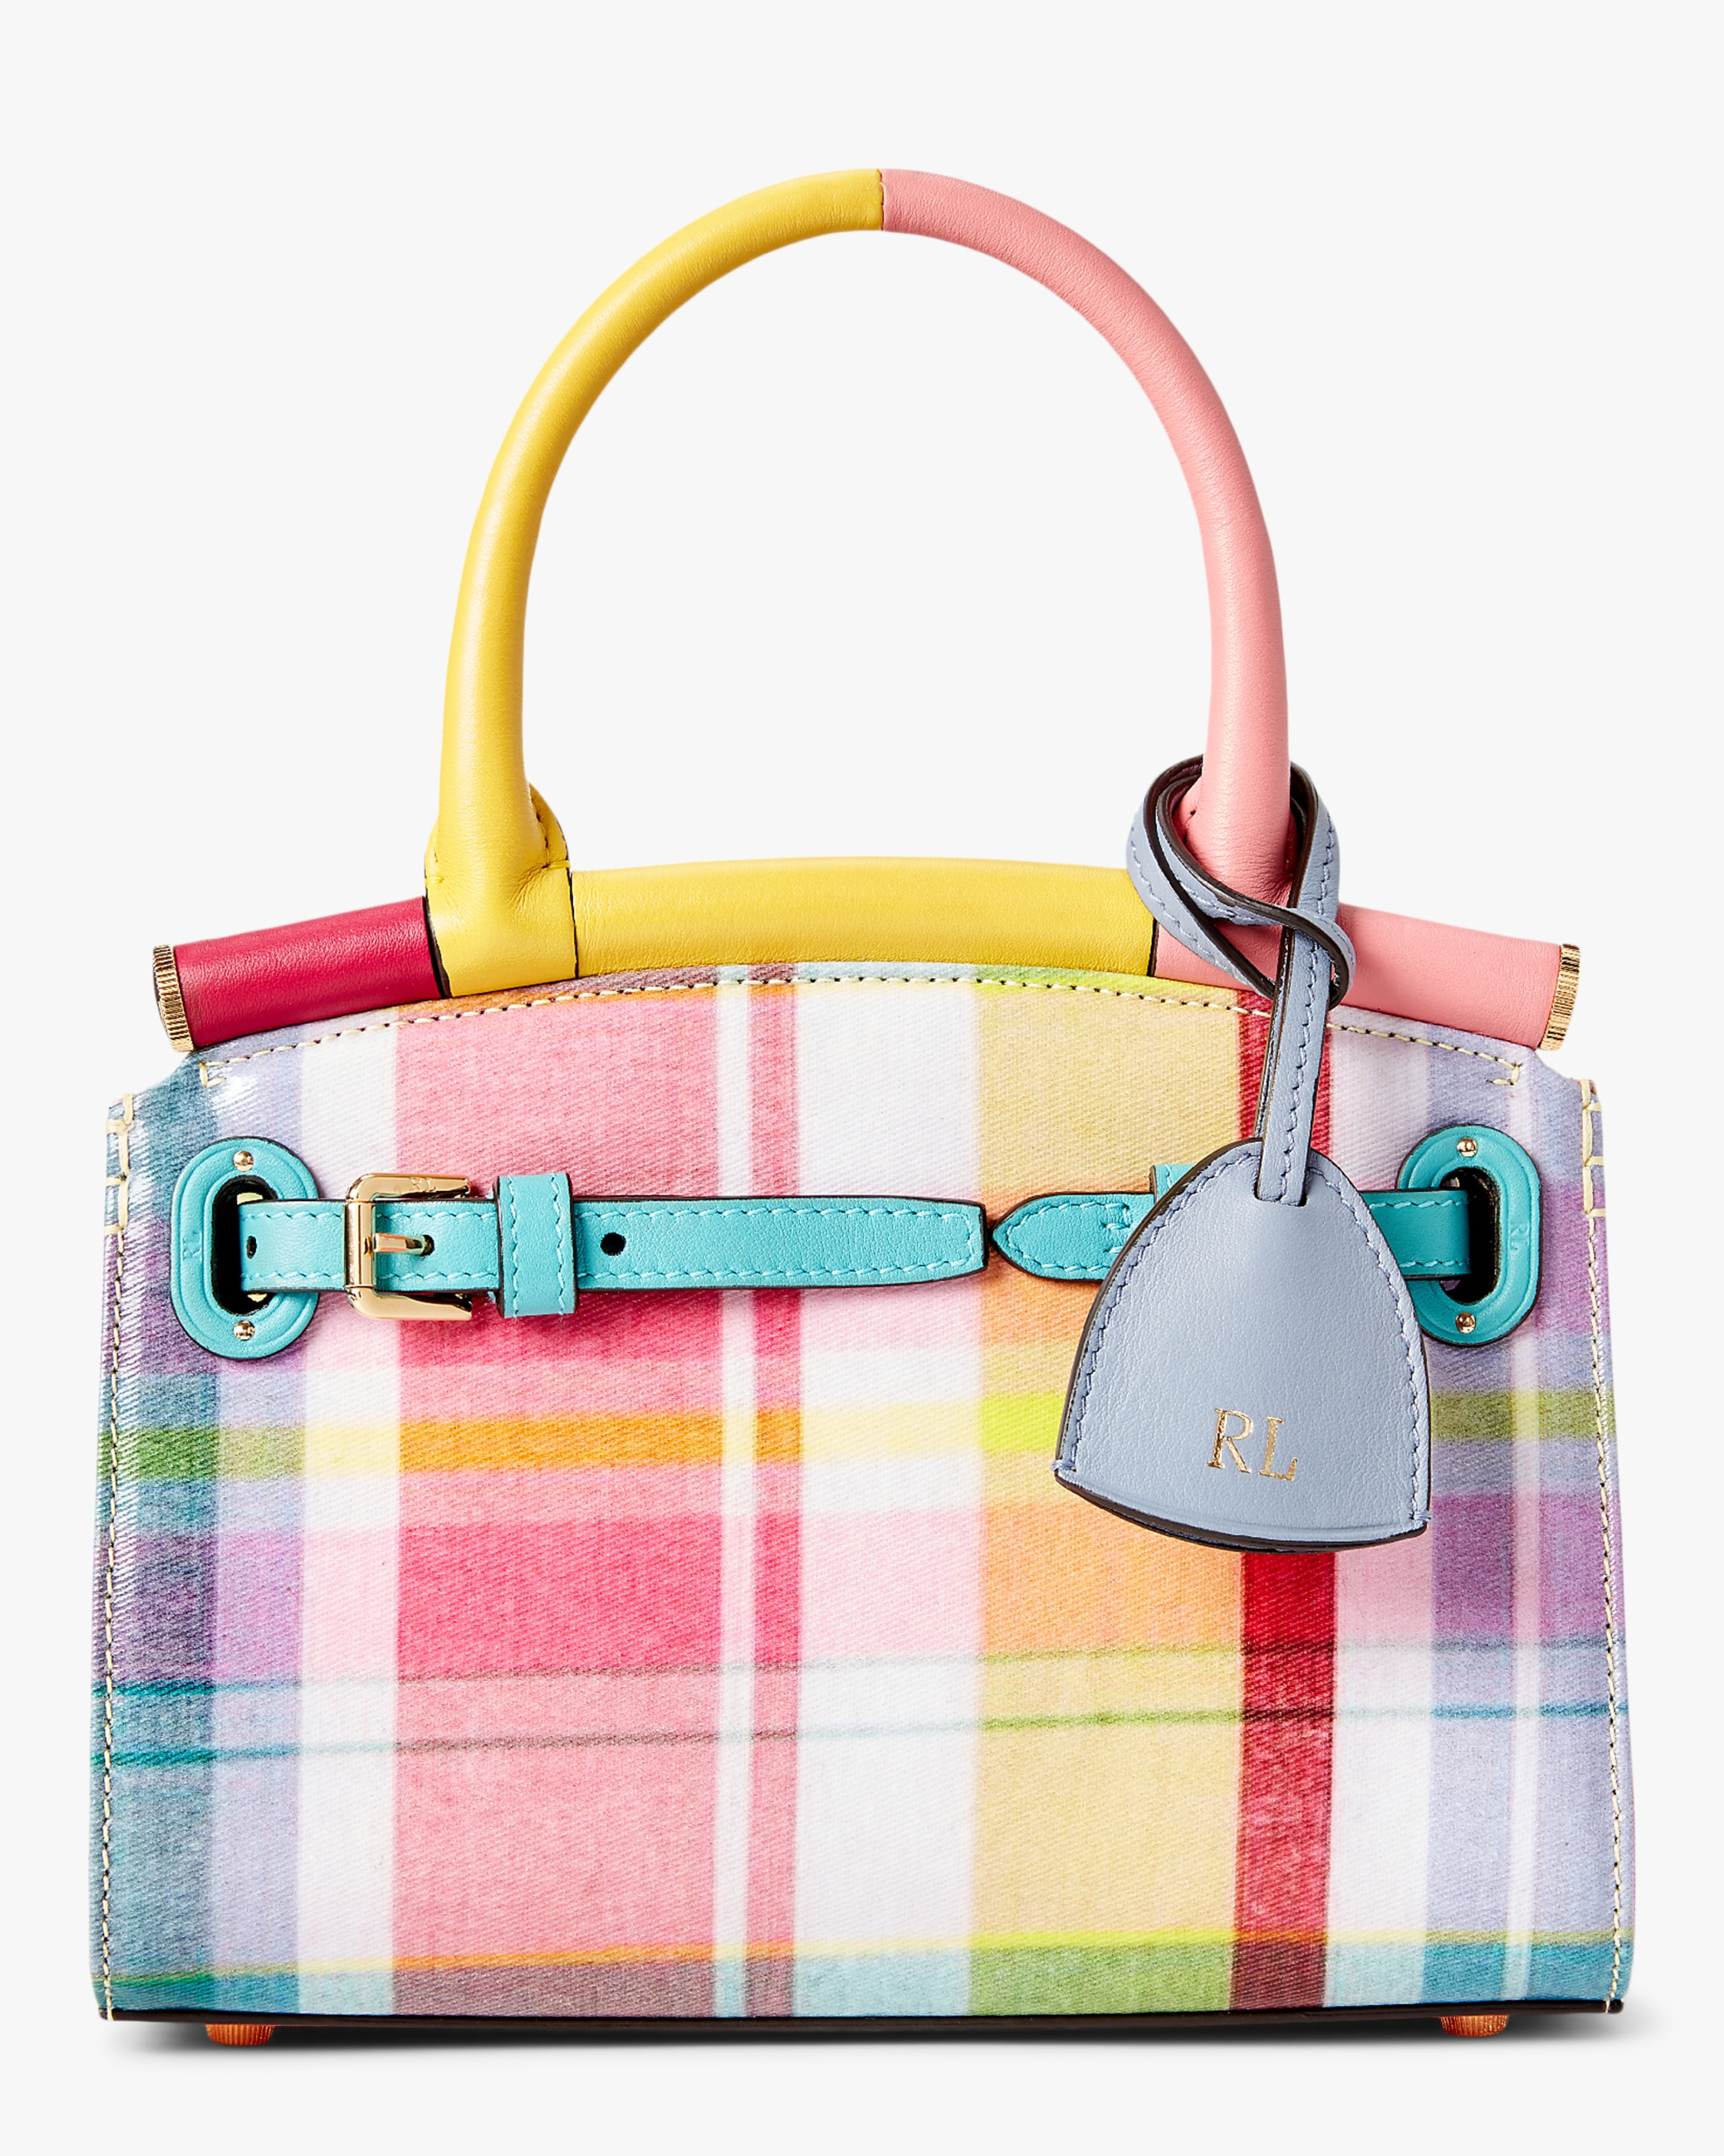 Ralph Lauren MADRAS MINI RL50 HANDBAG